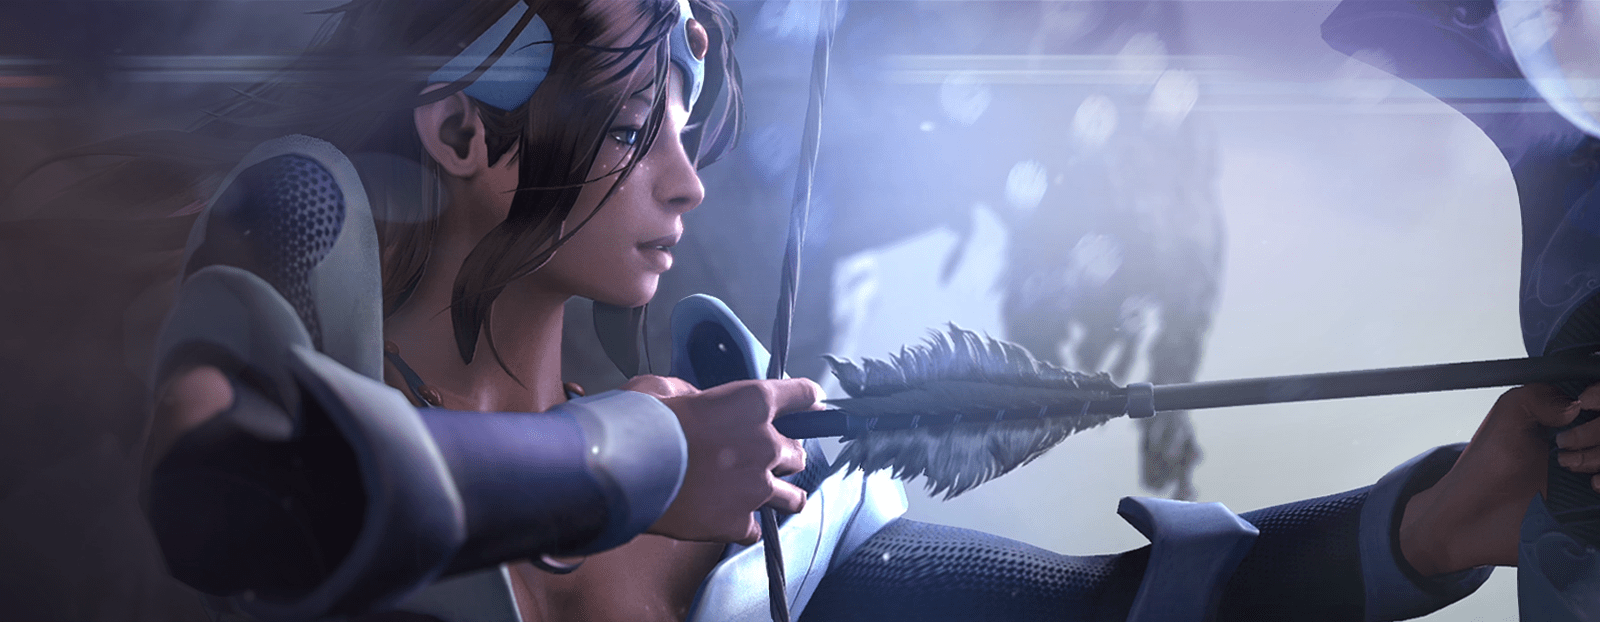 Dota 2 Being Revamped With Source 2 Engine And Upgraded